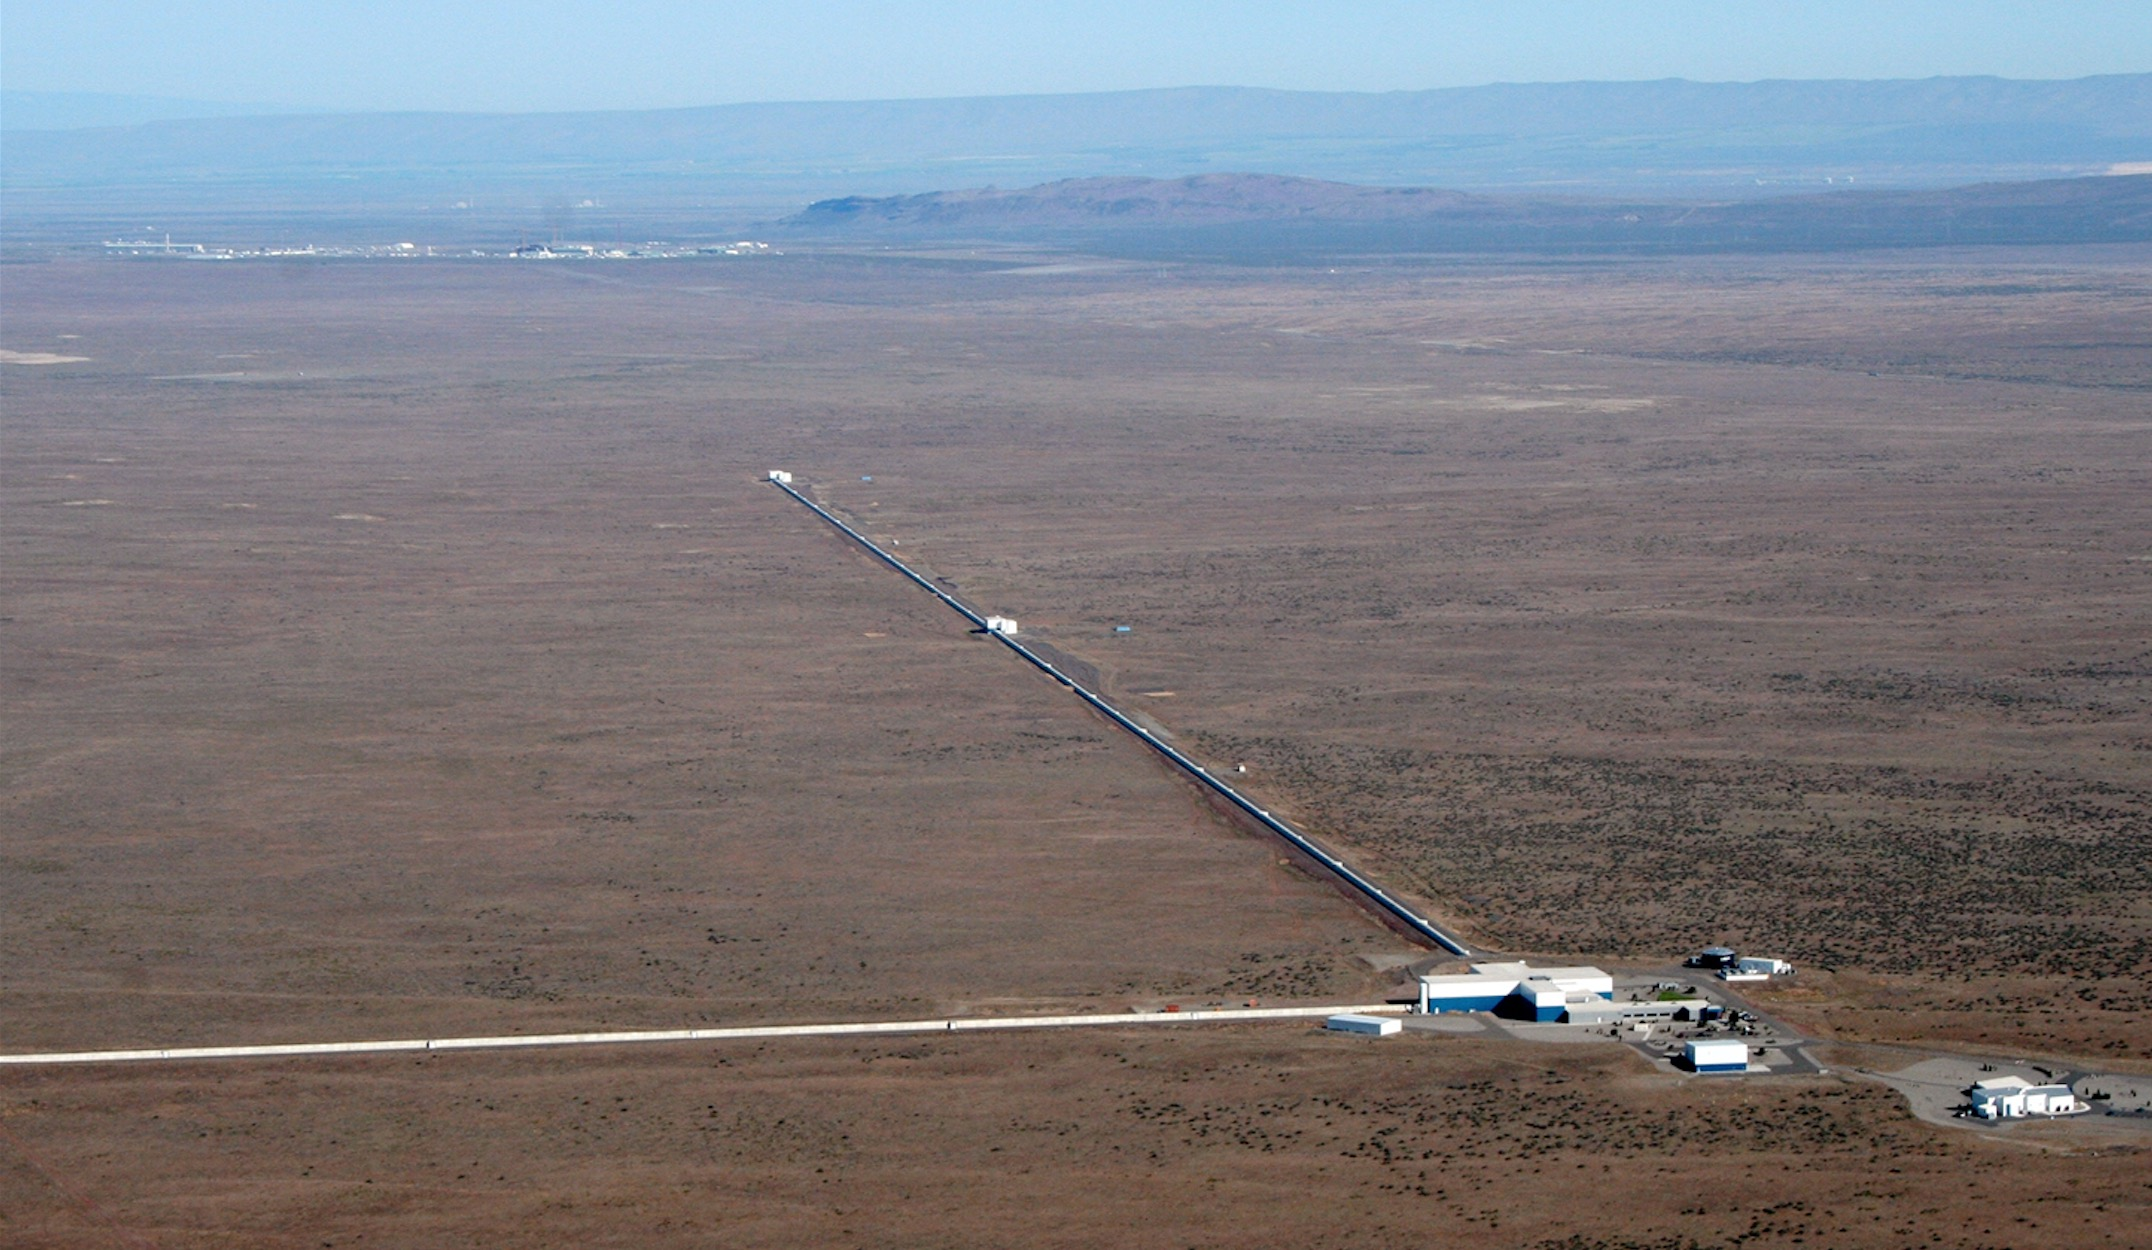 Featured image: Gravitational Waves